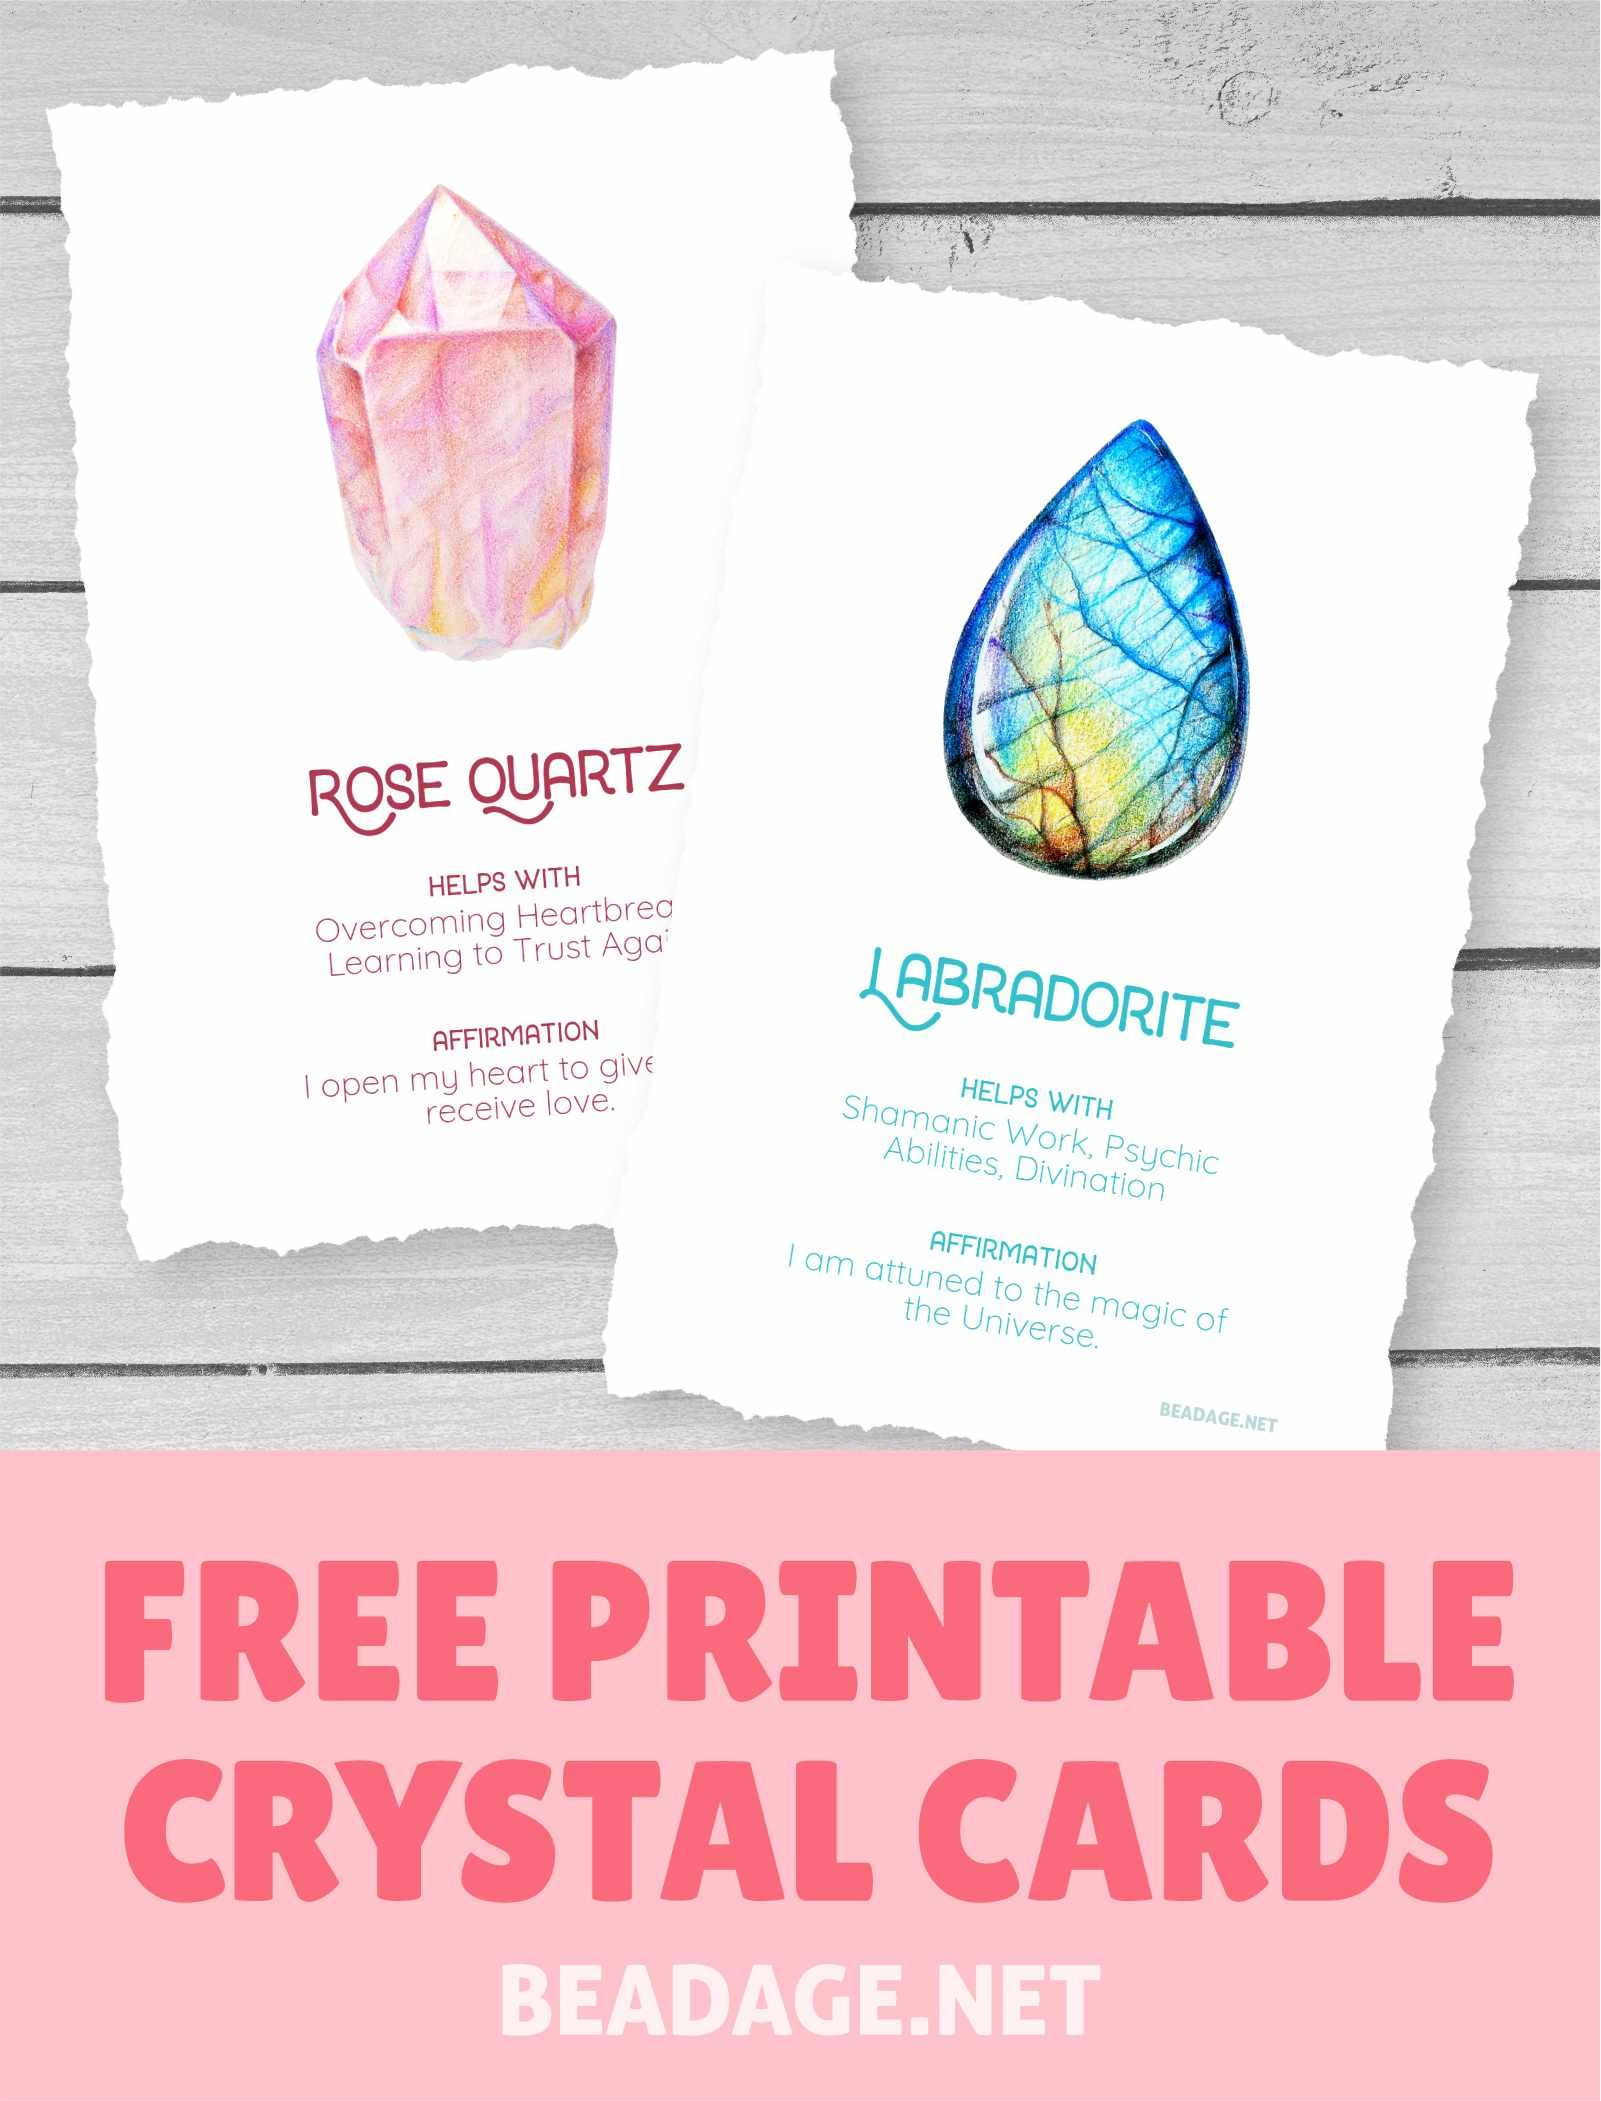 Gorgeous illustrated cards with crystal picture, meaning, and affirmation. #crystals #gemstones #witchy